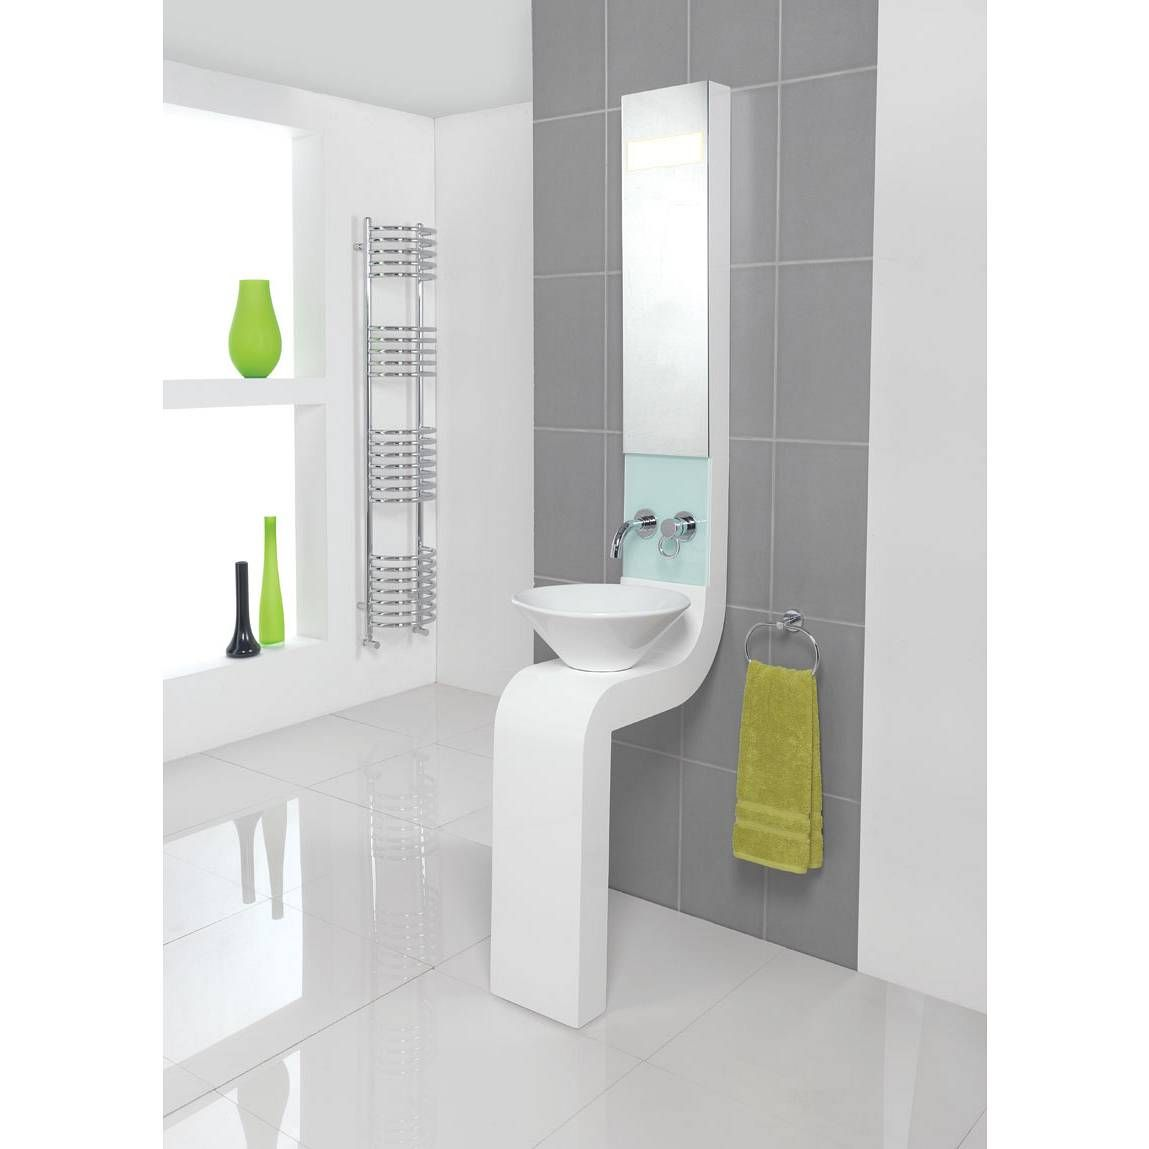 Maybe for the downstairs loo | Bathroom Ideas | Pinterest ...